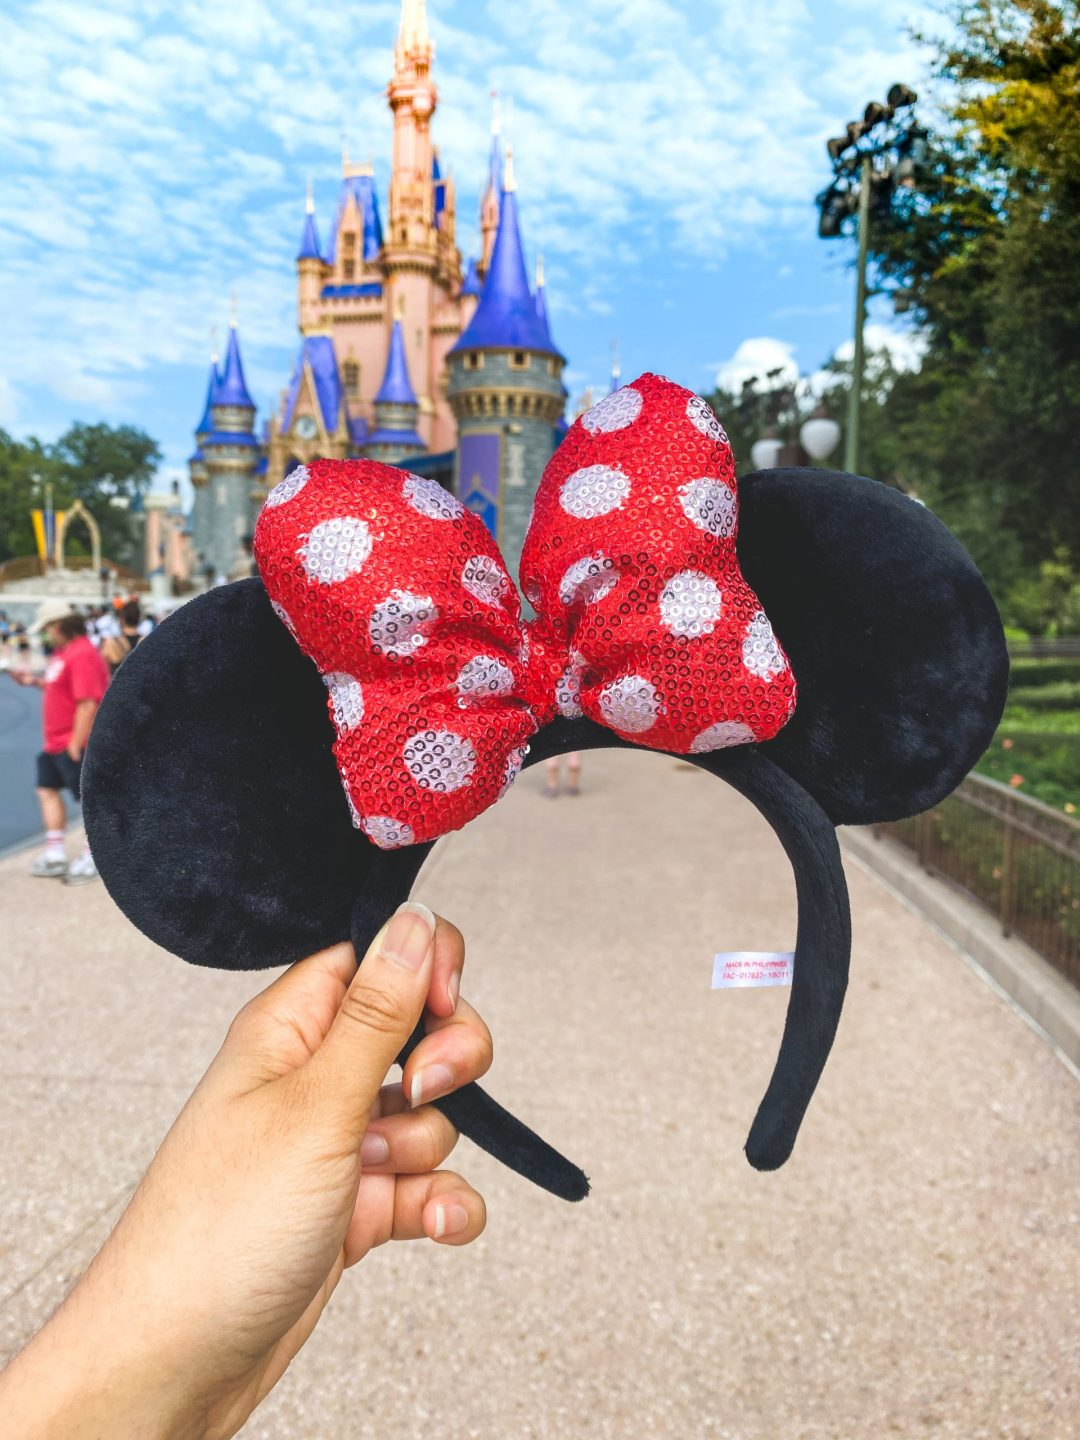 Minnie Mouse ear headband with red polka dotted bow and pink castle in background